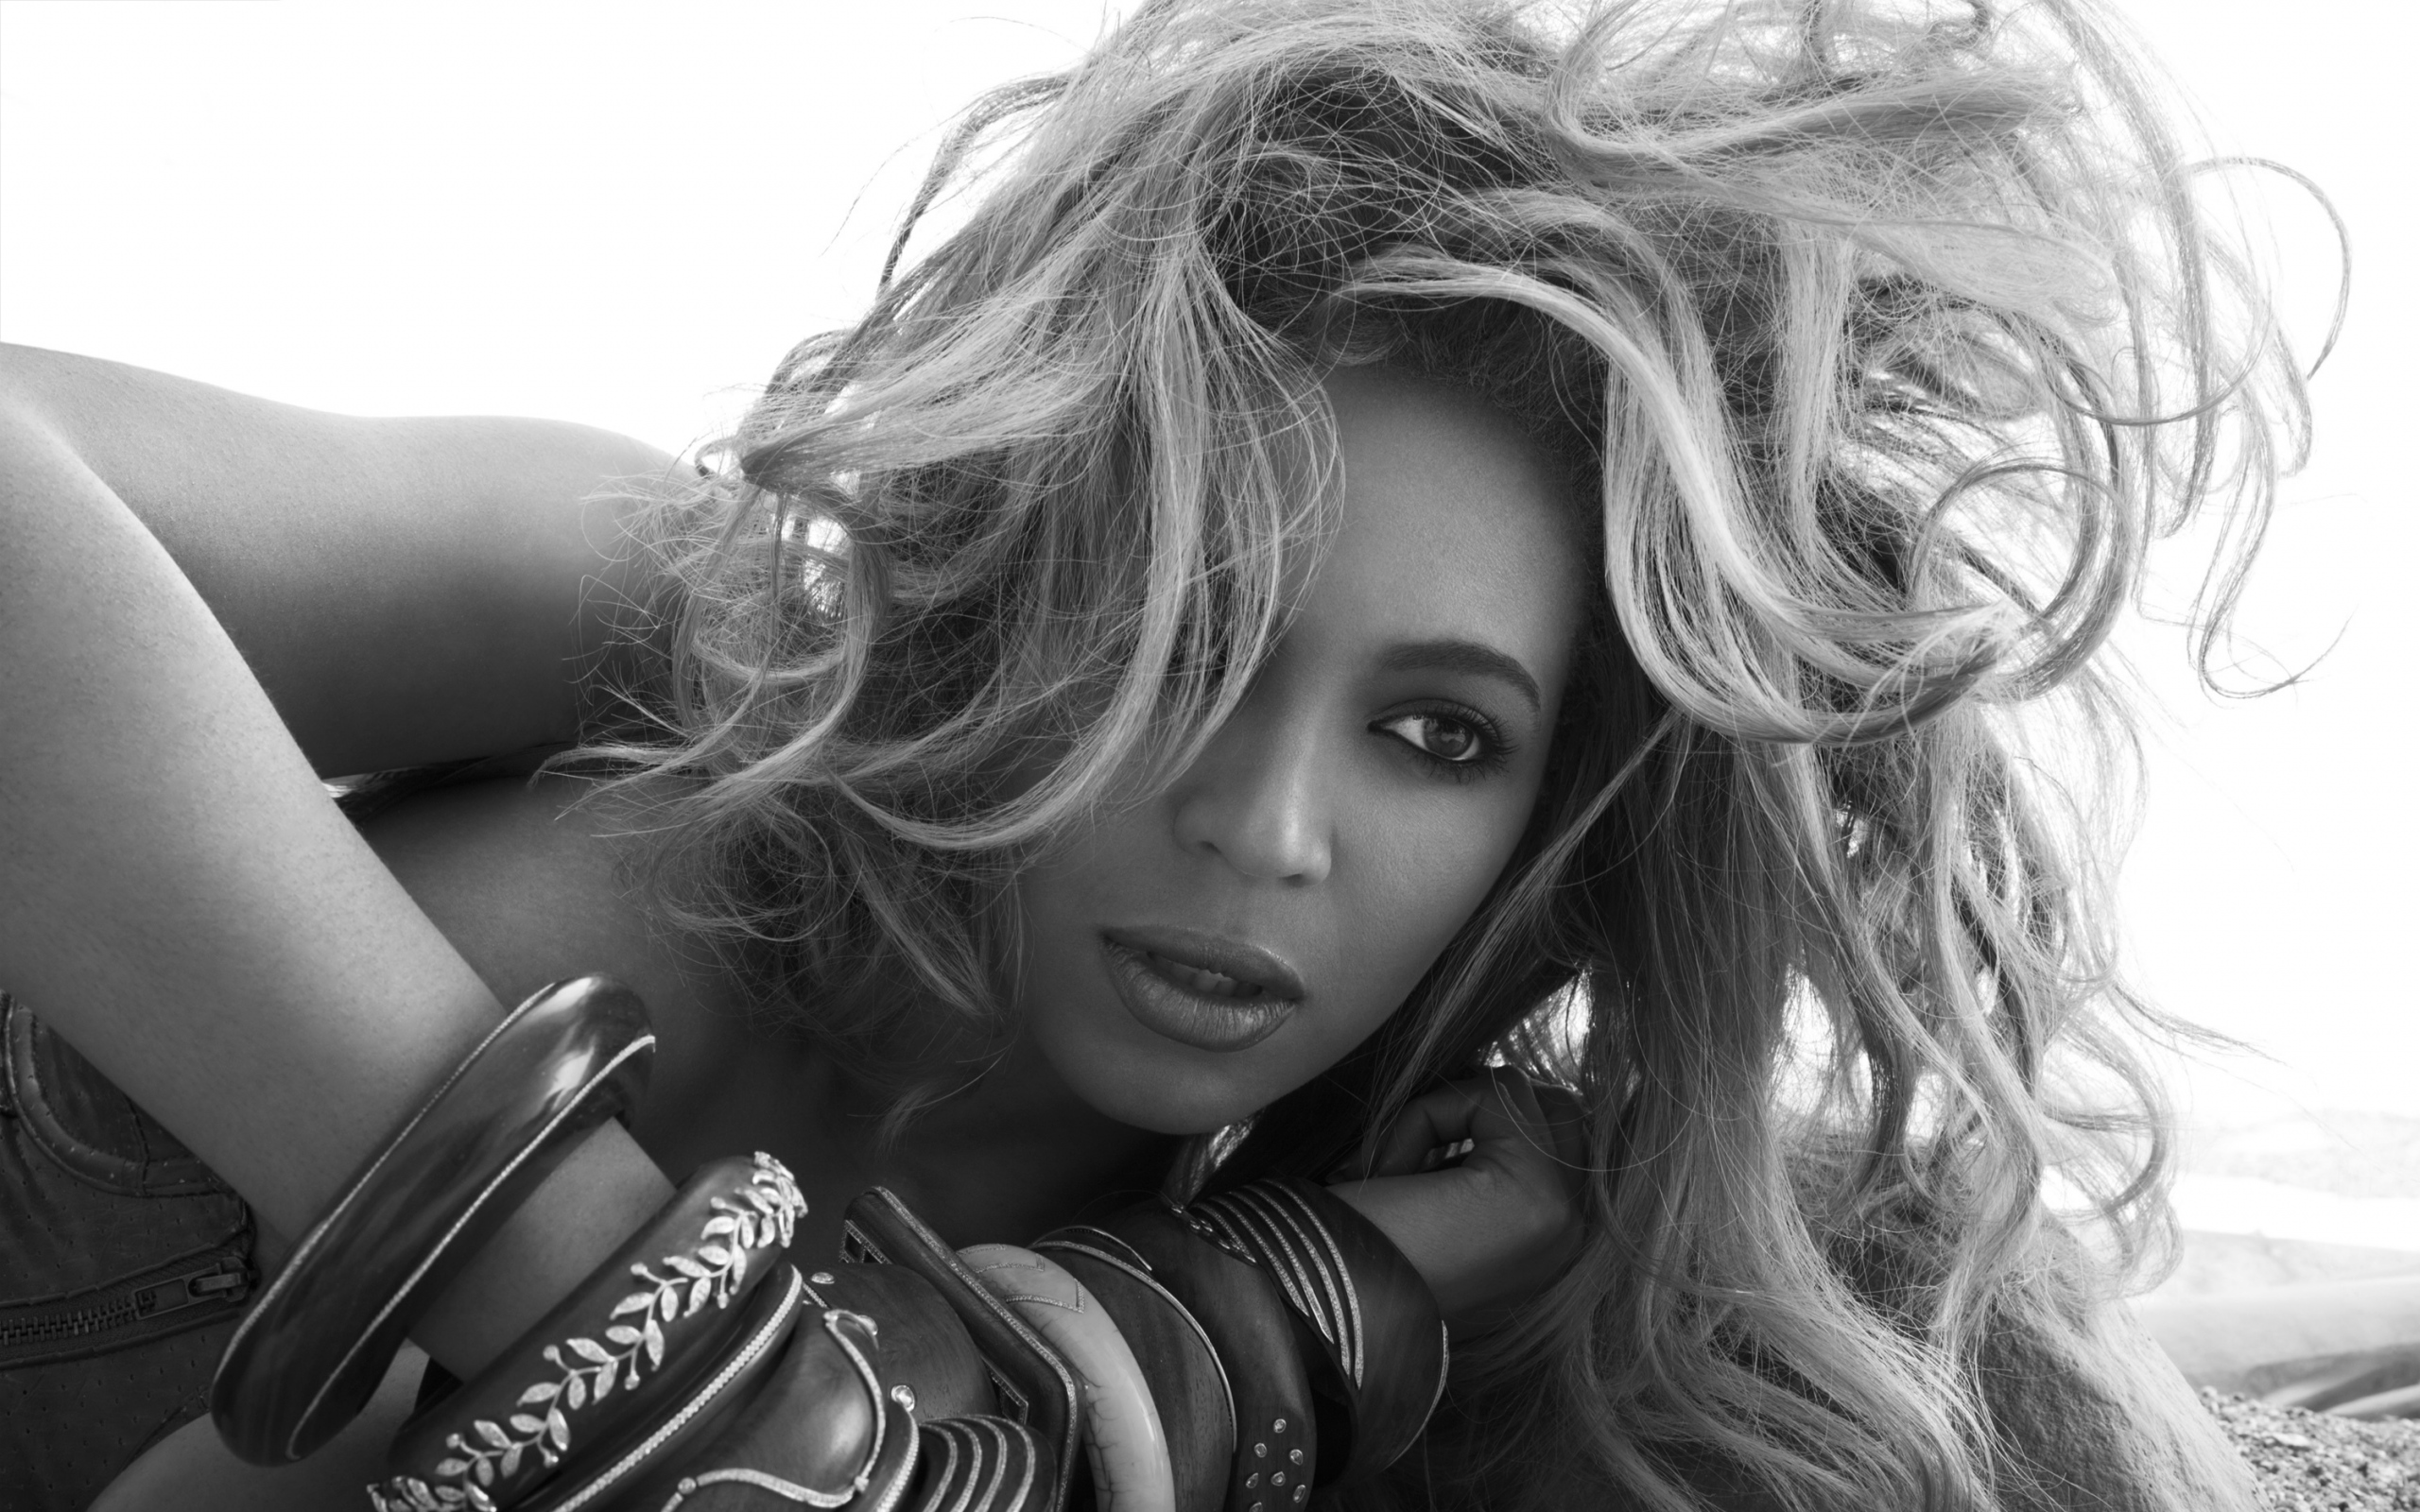 Download Wallpaper 2560x1600 Beyonce knowles Actress 2560x1600